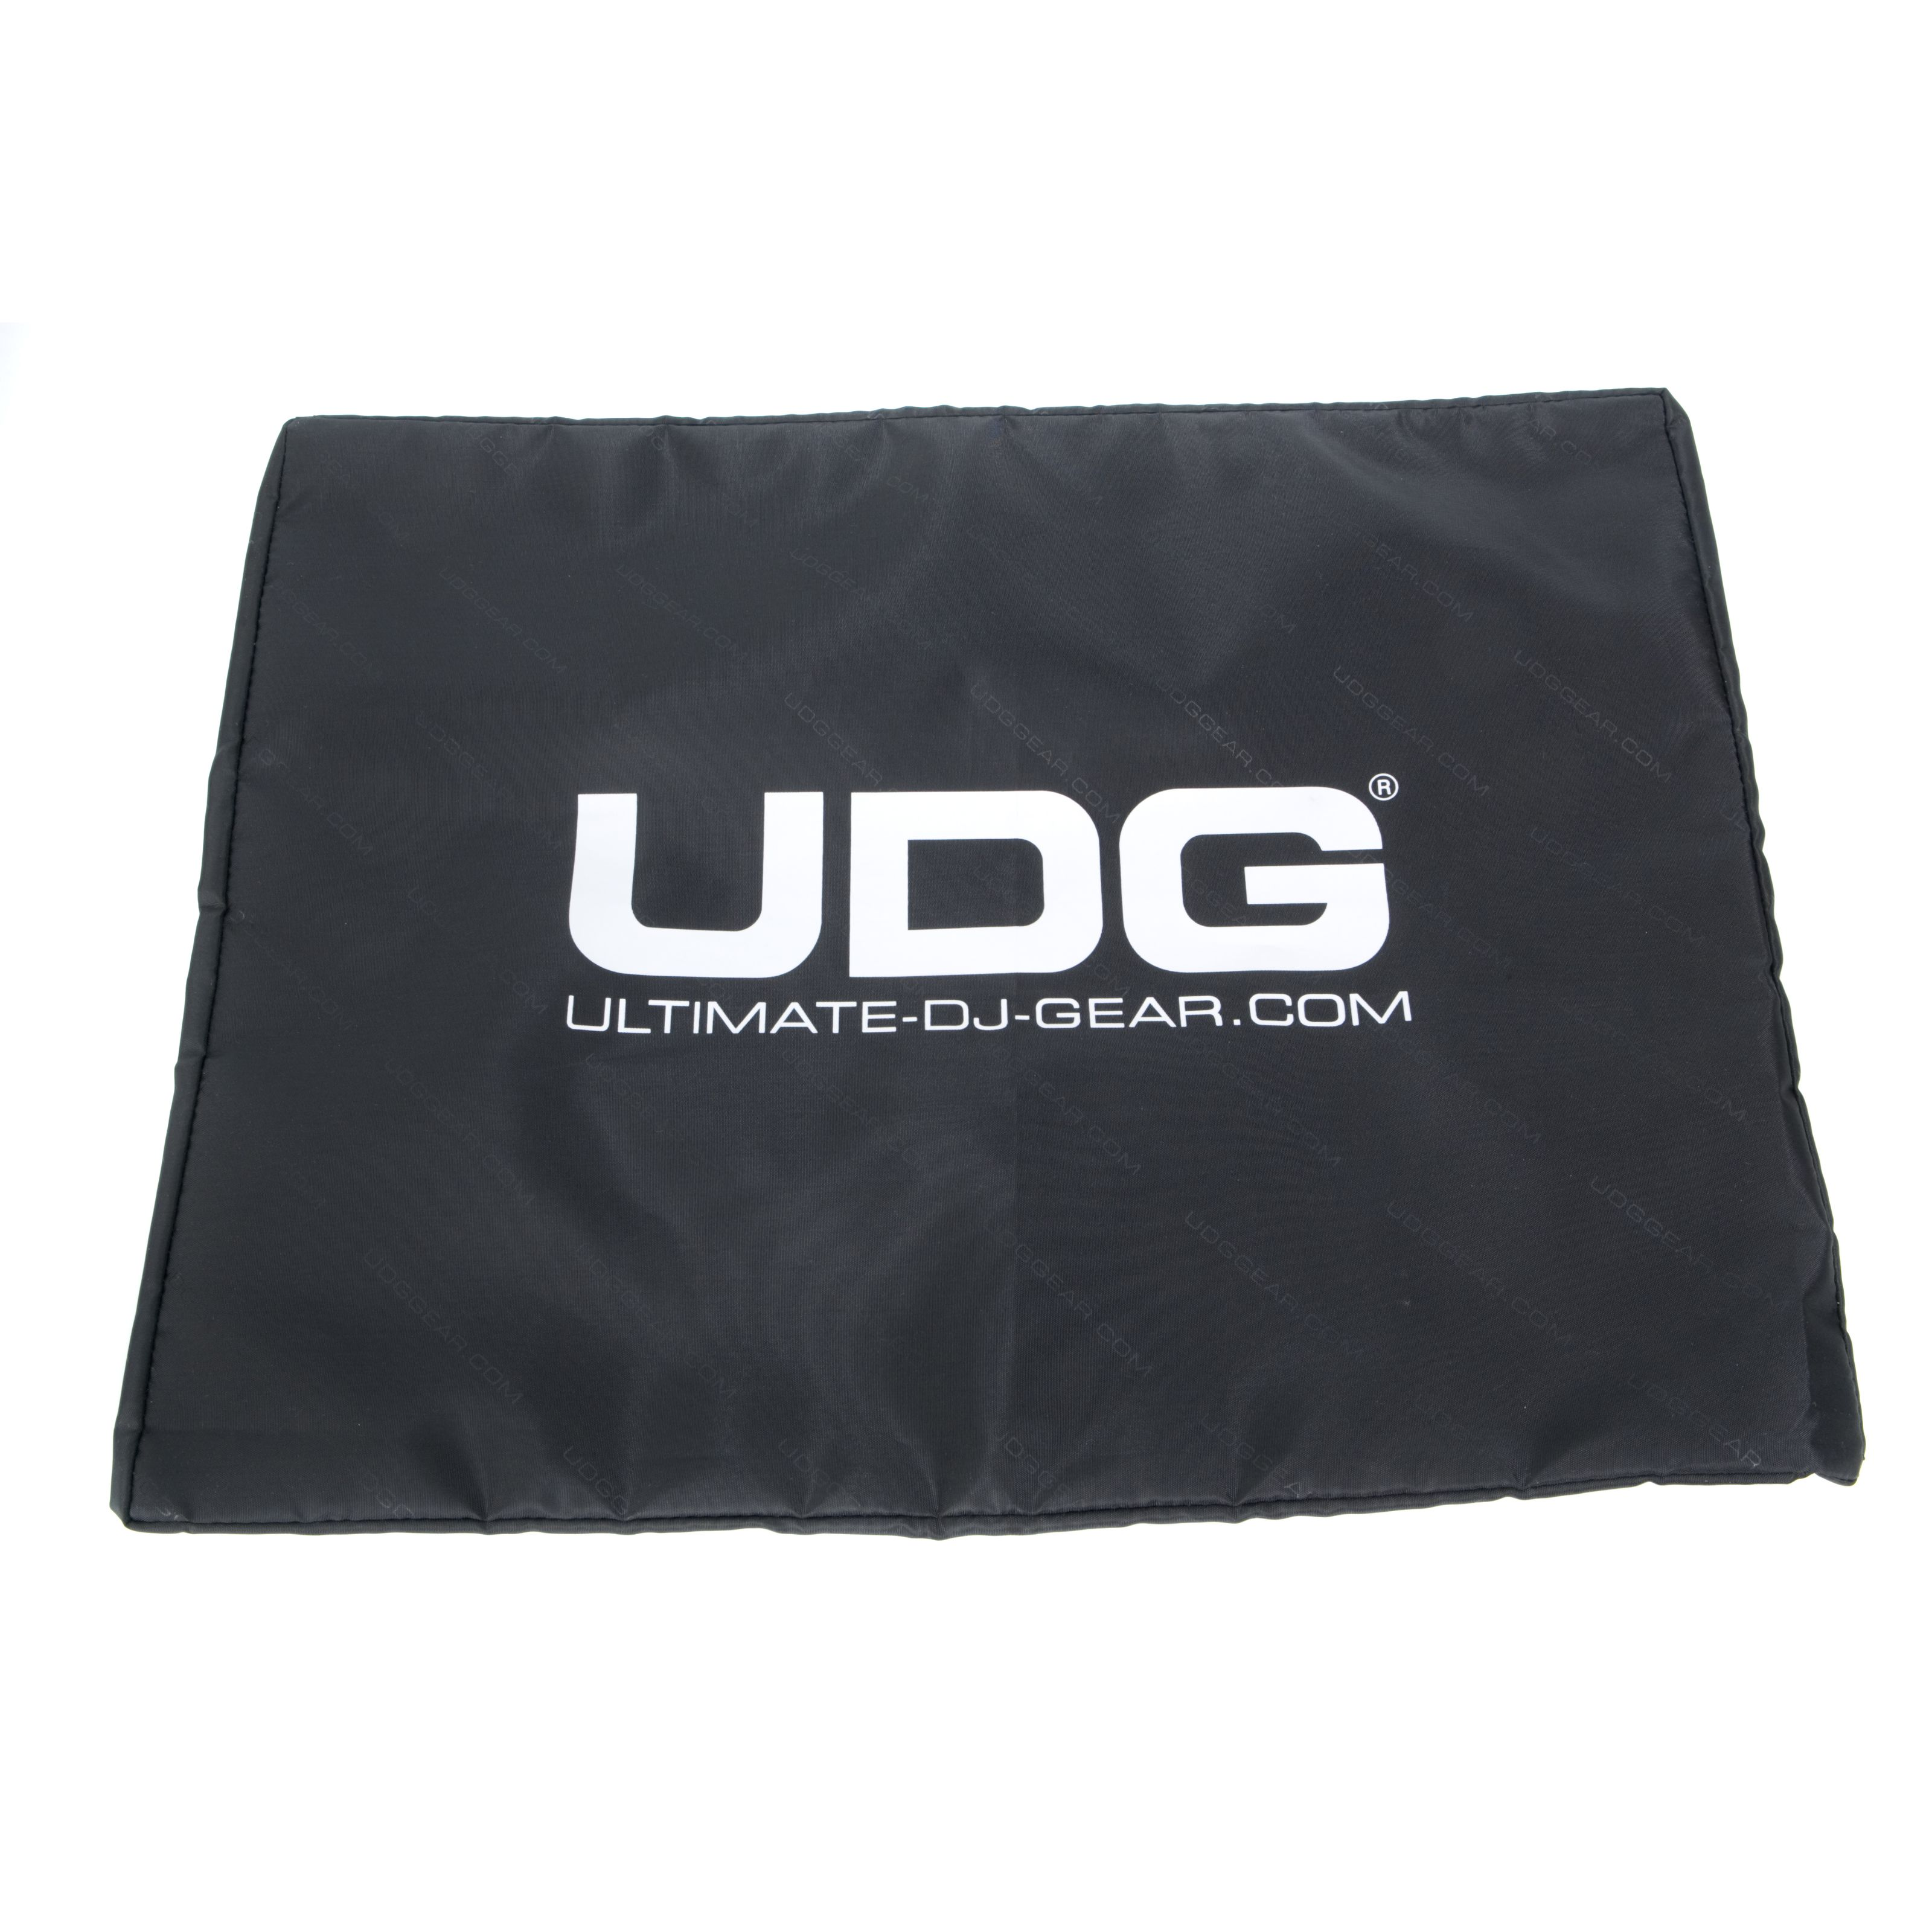 UDG - Ultimate Turntable & 19 Mixer Dust Cover Black MK2 (1 pc) (U9242) 89347